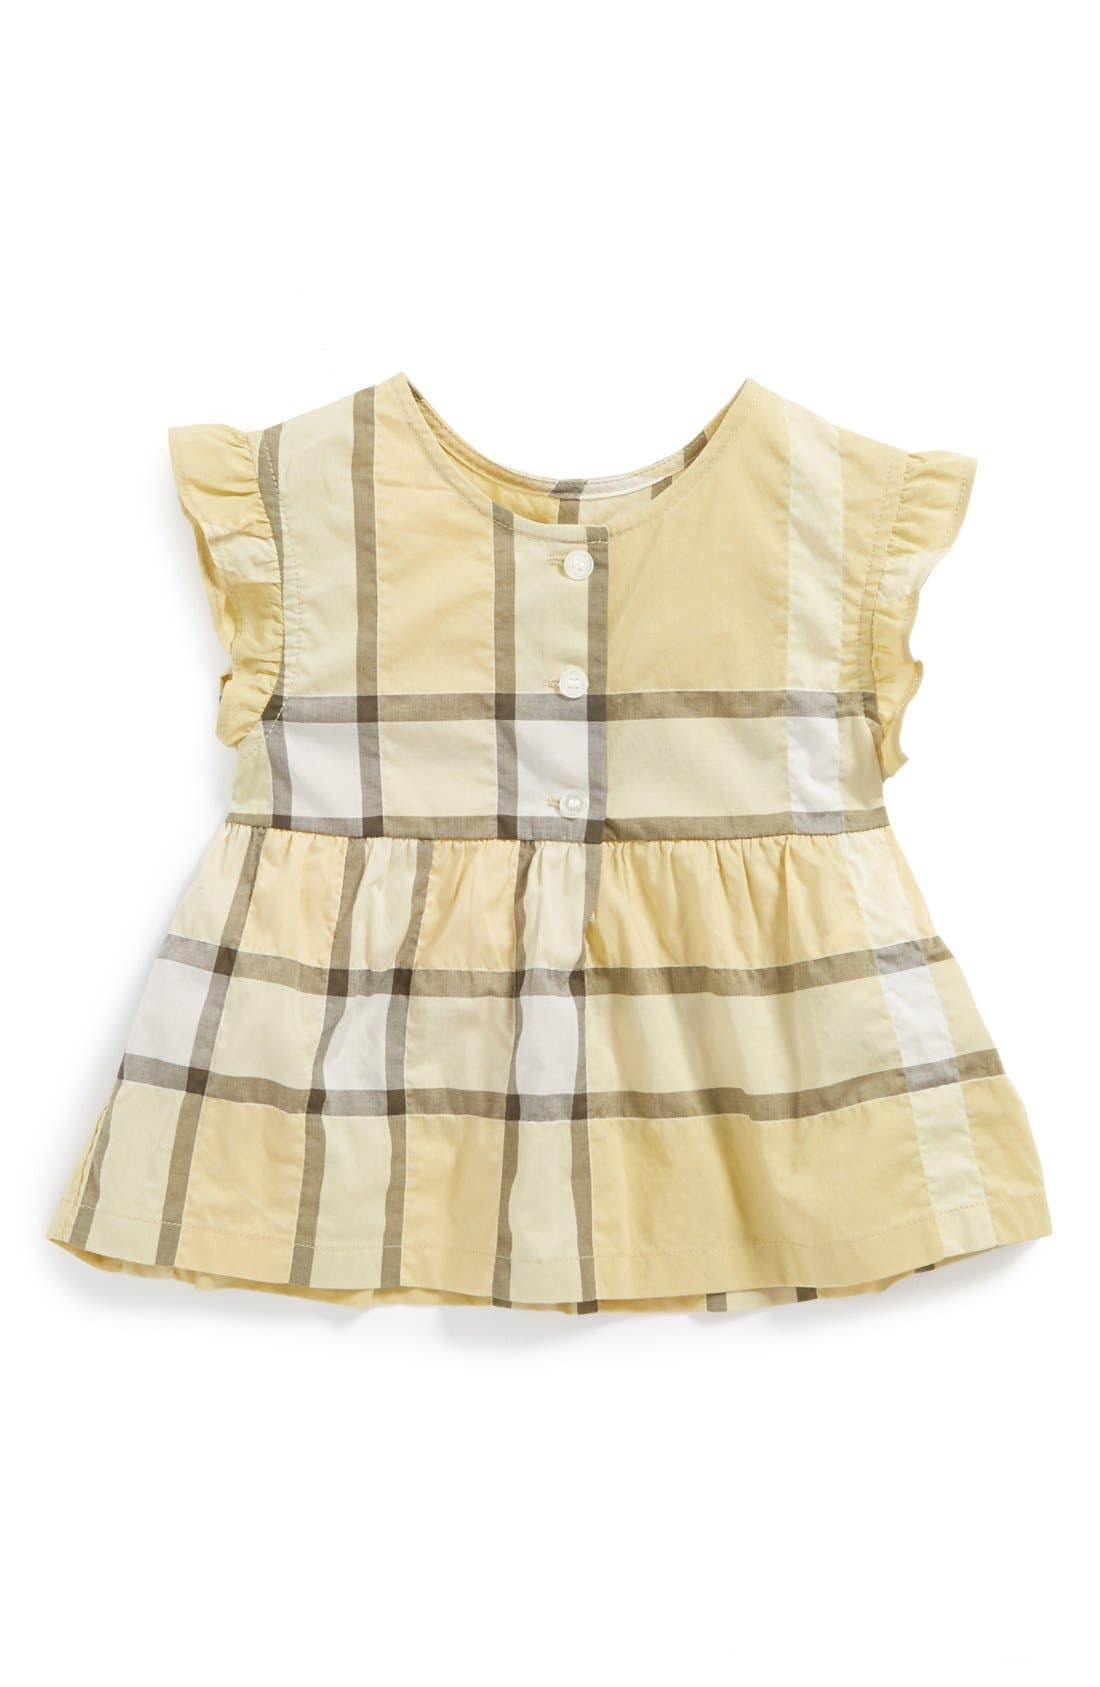 Alternate Image 1 Selected - Burberry Top (Baby Girls)